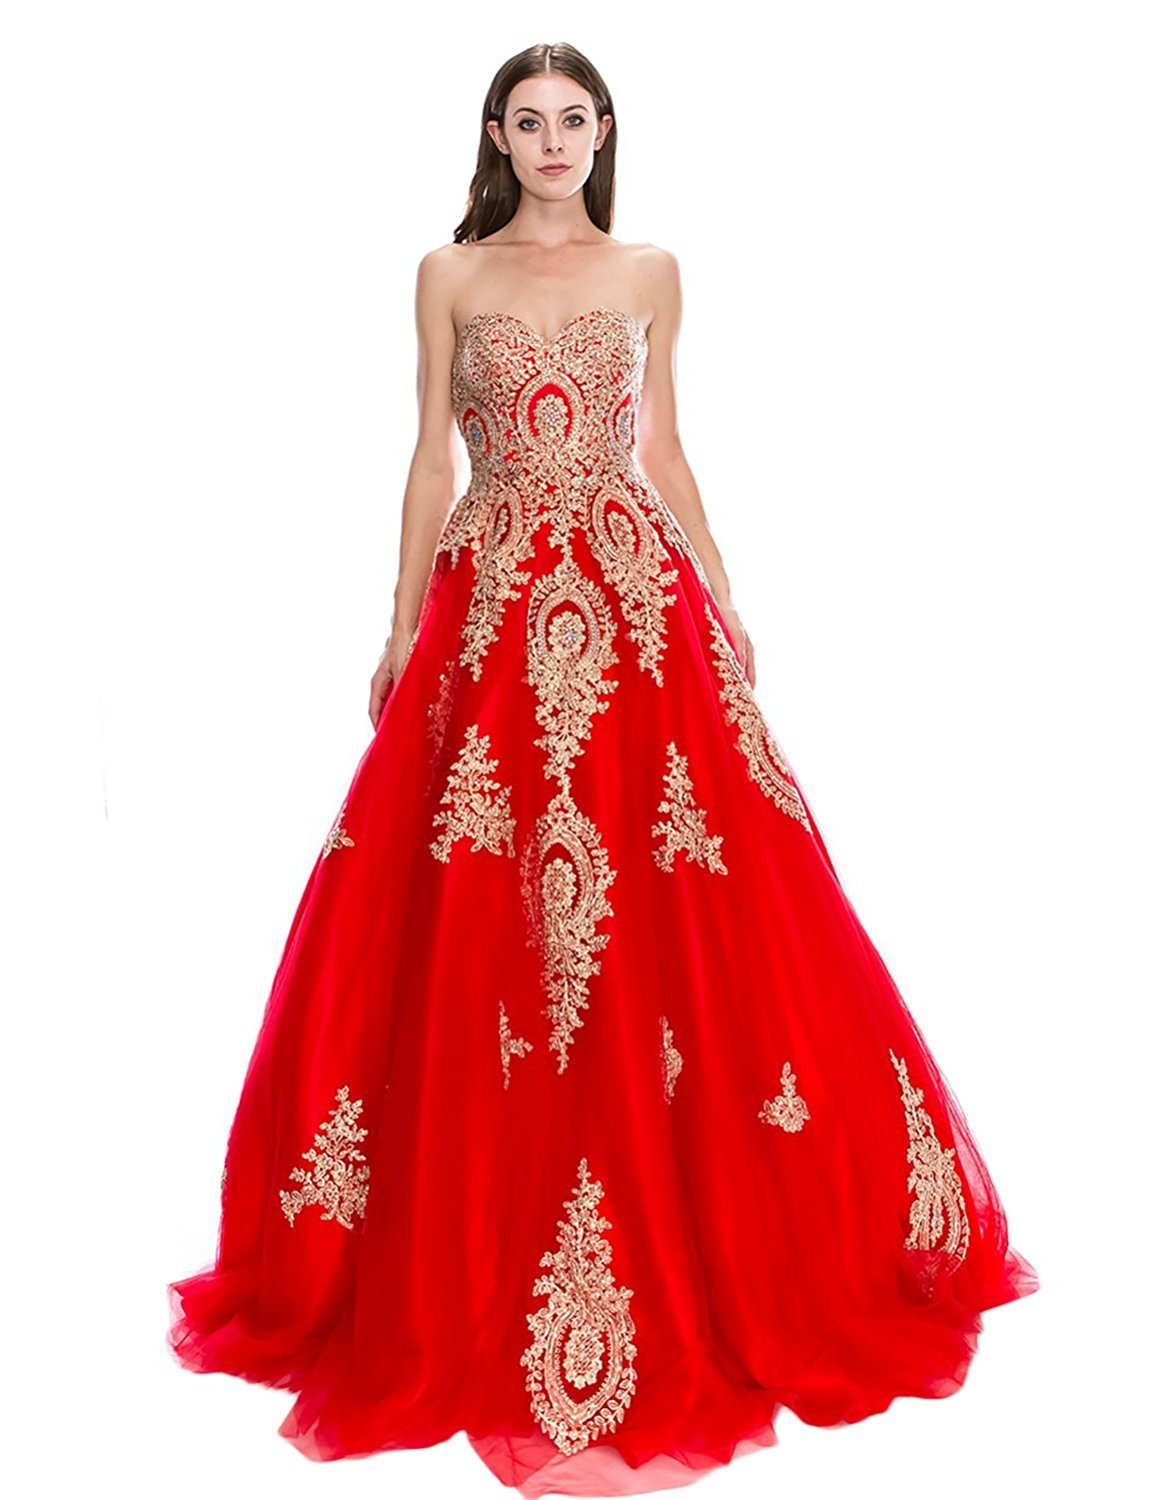 Women's Tulle Strapless Long Evening Dress A Line Applique Formal Prom Gown